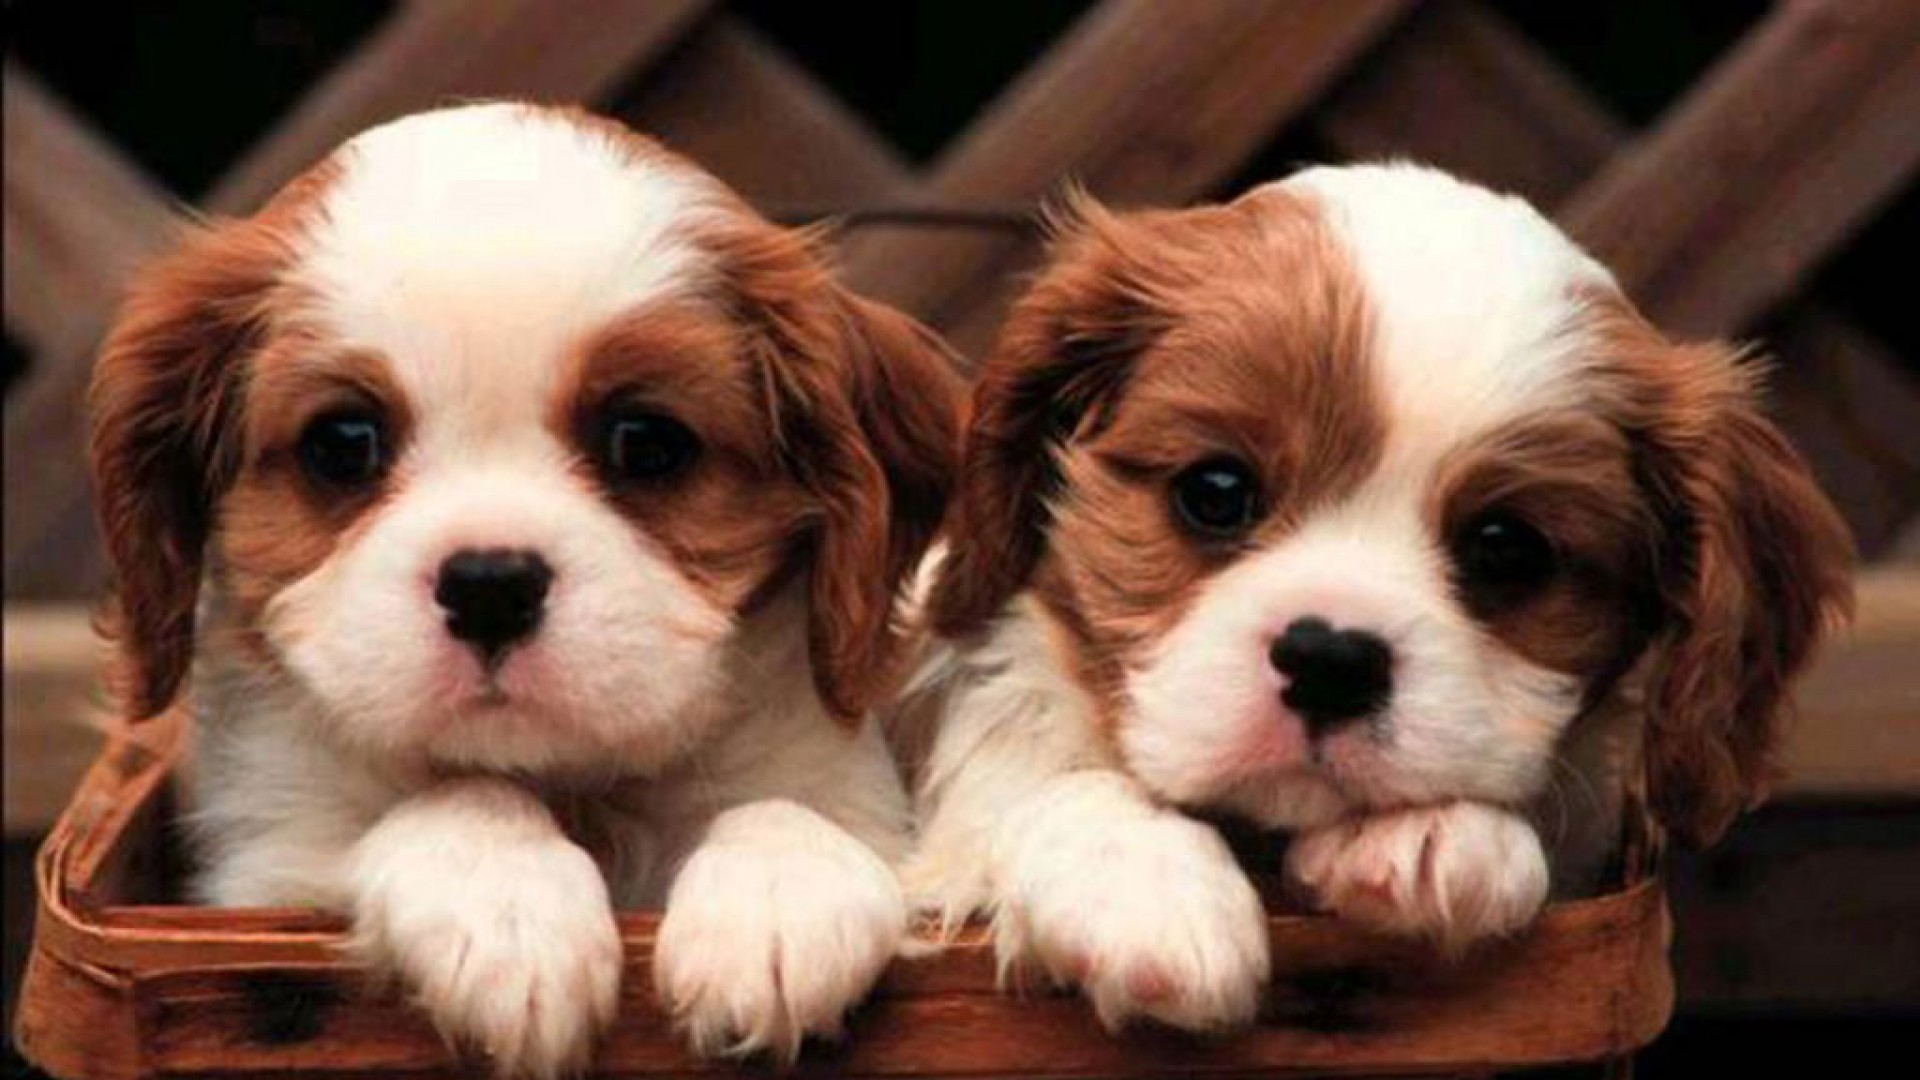 1920x1200 1920x1200 2 dog Wallpapers - Download free 2 dog cute puppies wallpapers .